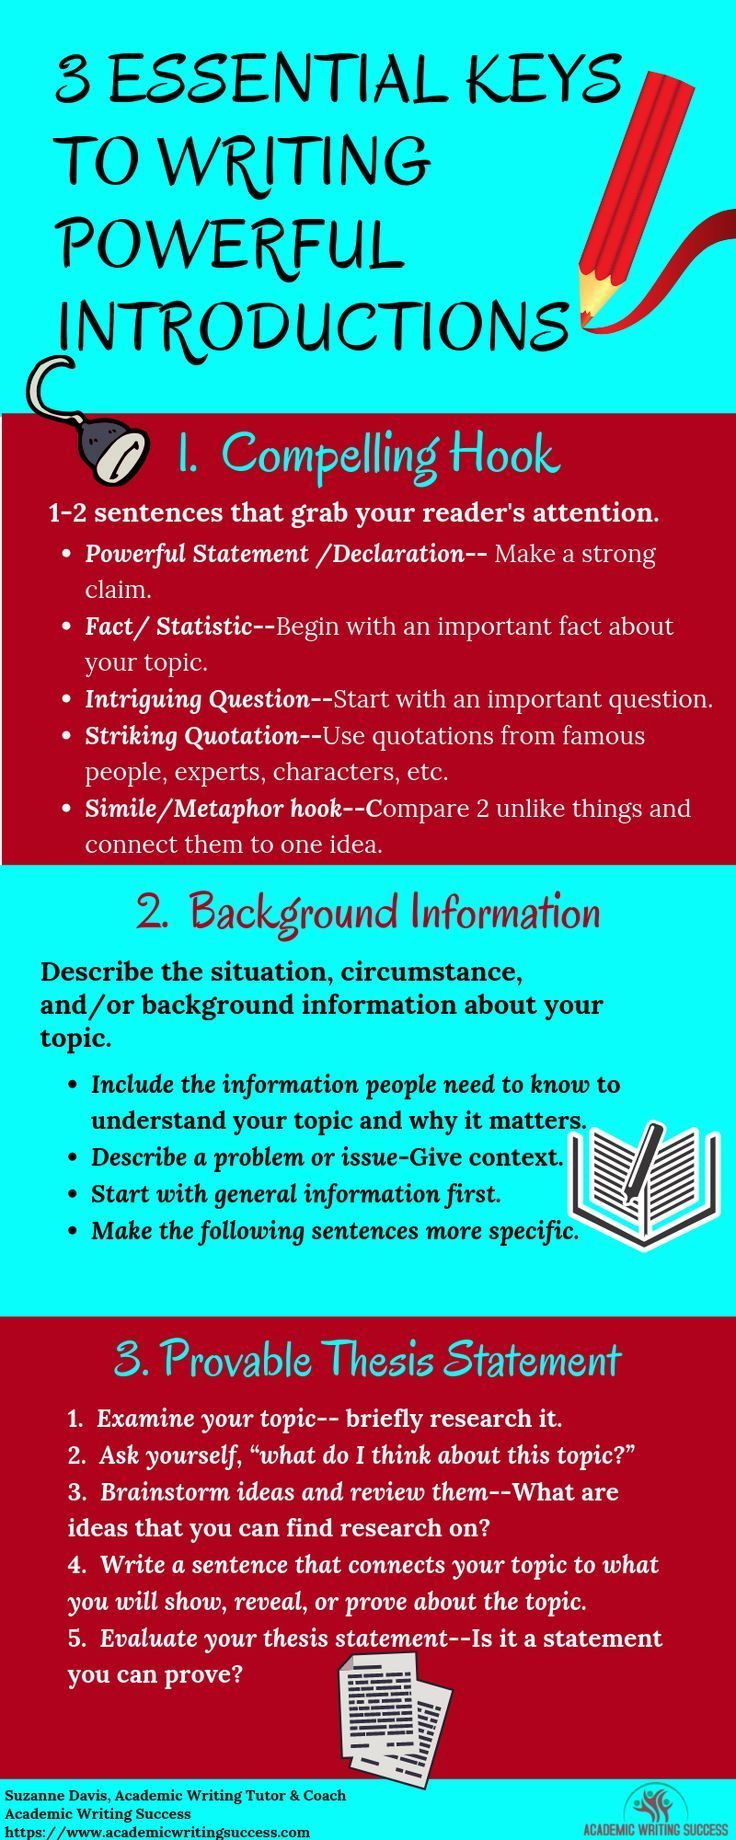 How To Write A Strong Introduction To A Research Paper Academic Writing Success Academic Essay Writing Academic Writing Writing A Thesis Statement